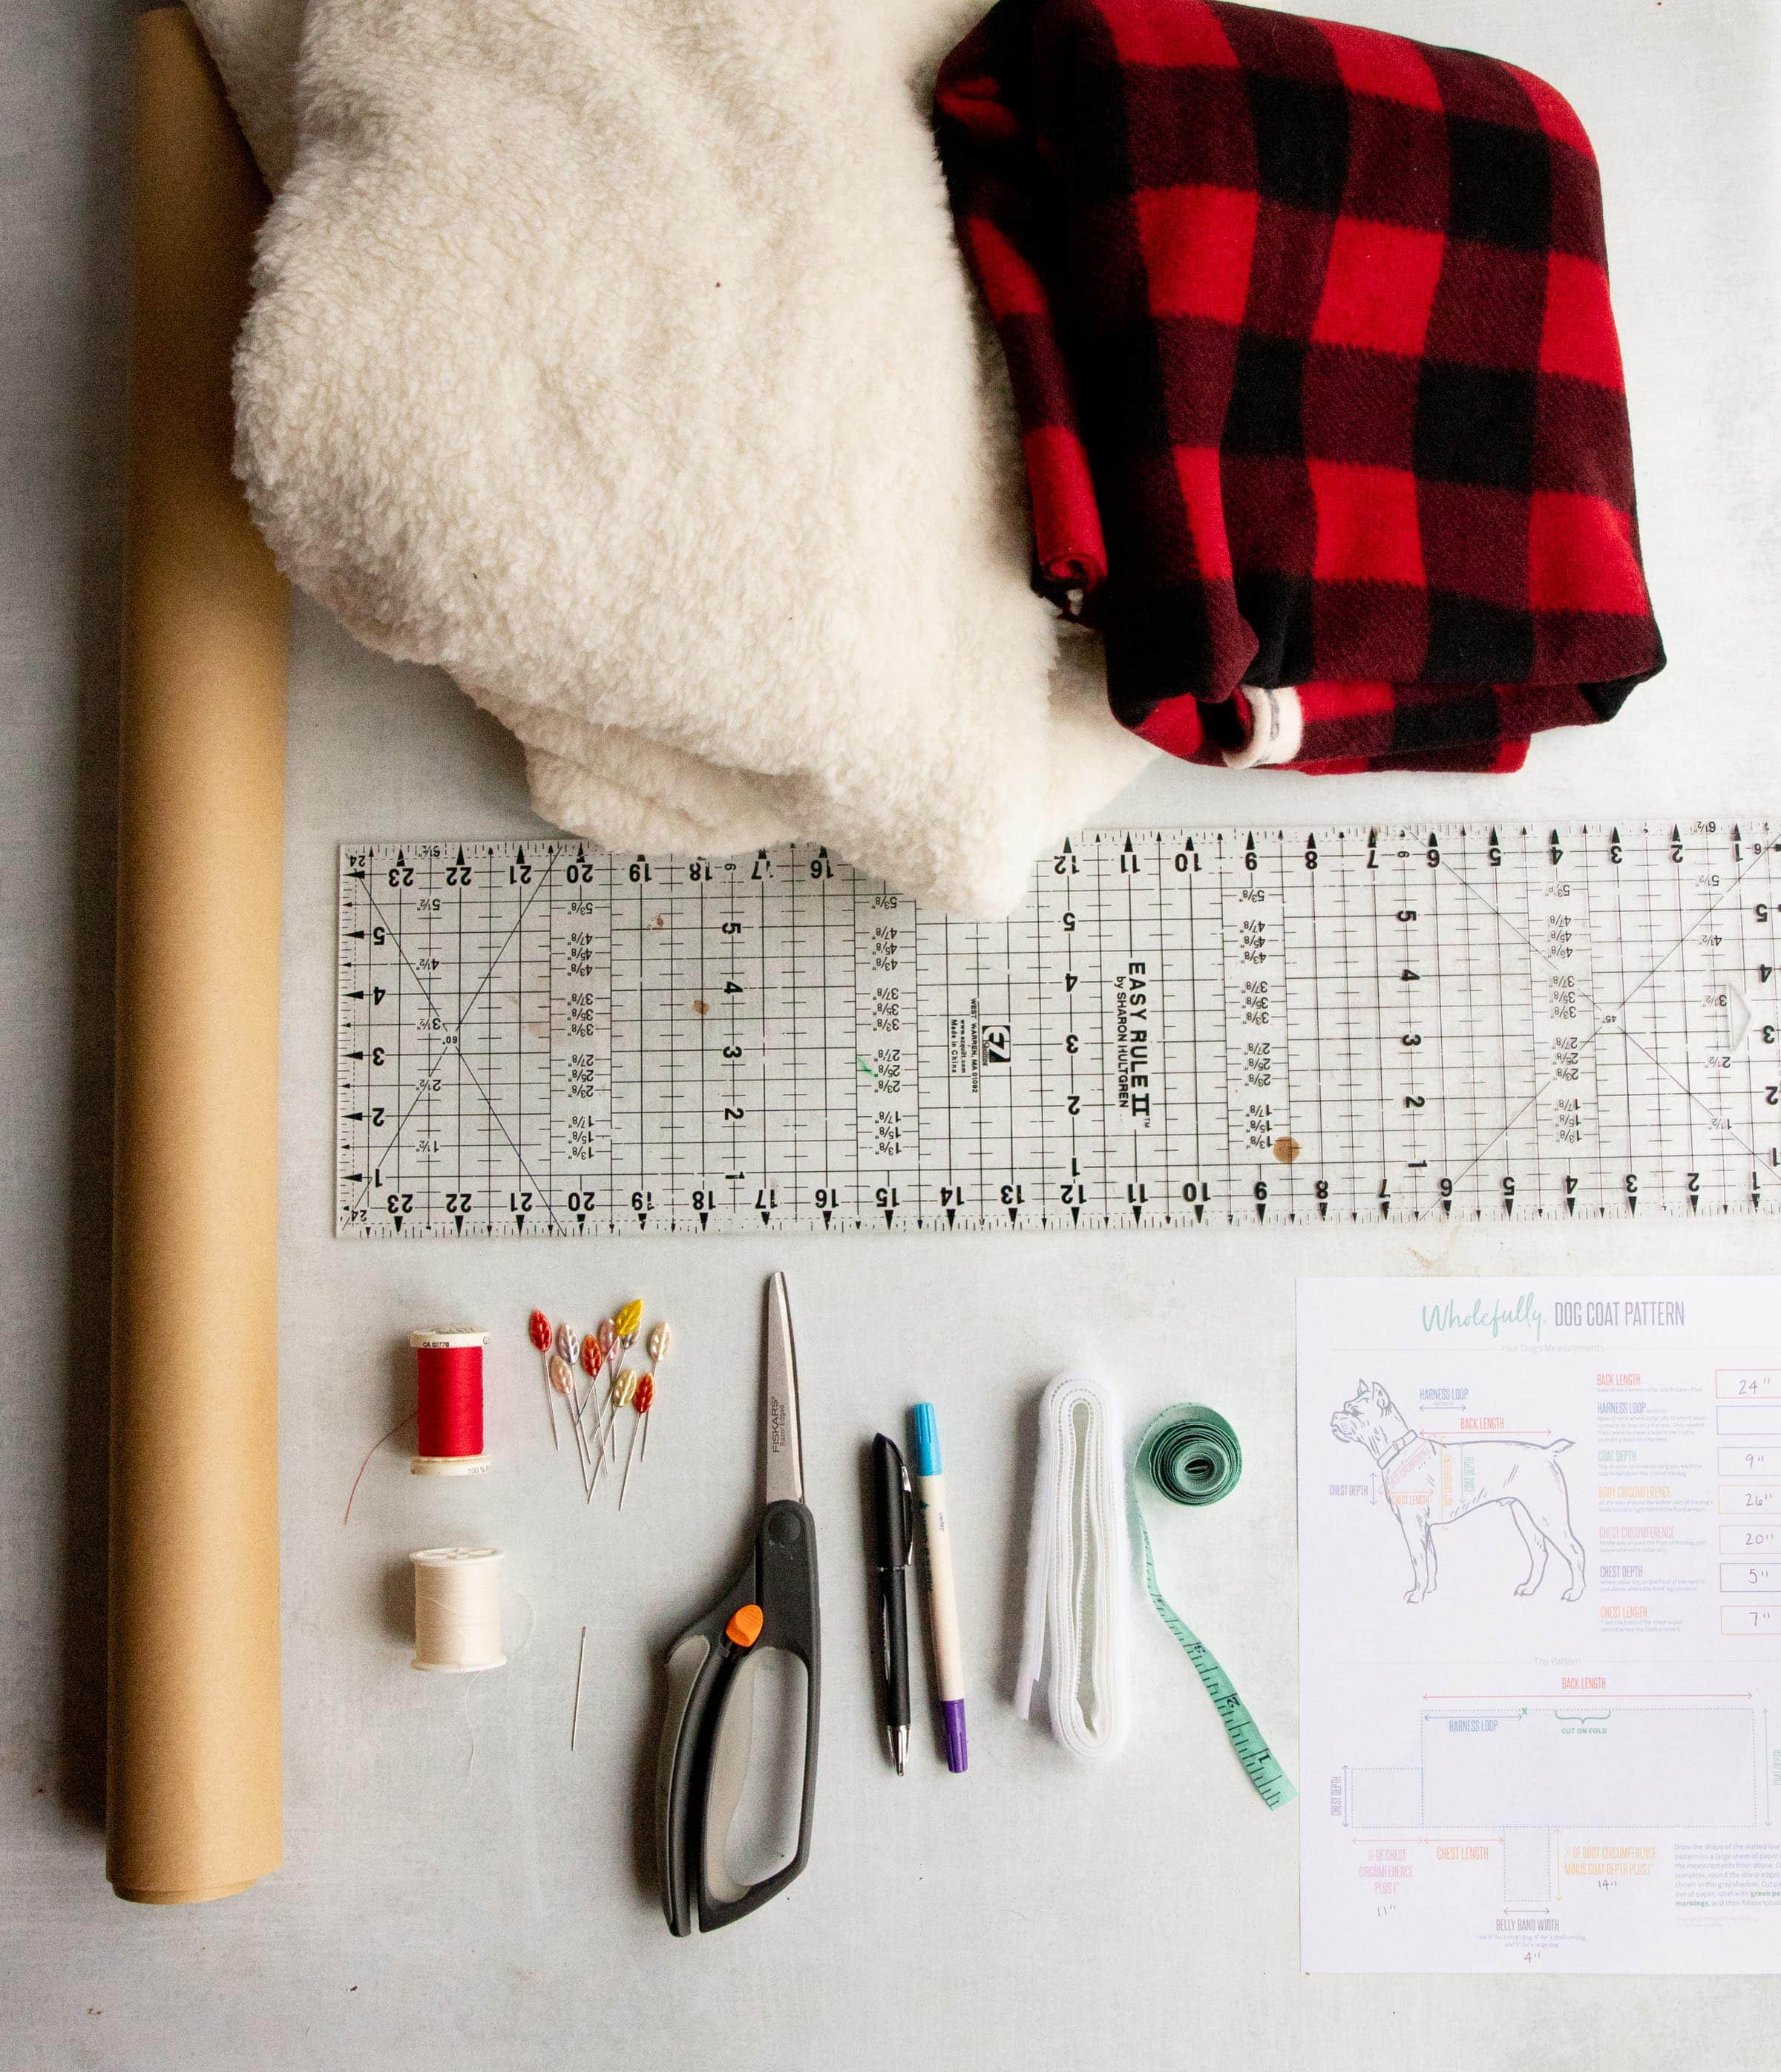 Materials laid out for a custom dog coat - fleece, faux fur, pattern paper, scissors, thread, pins, measuring tap, measurements sheet, and a ruler